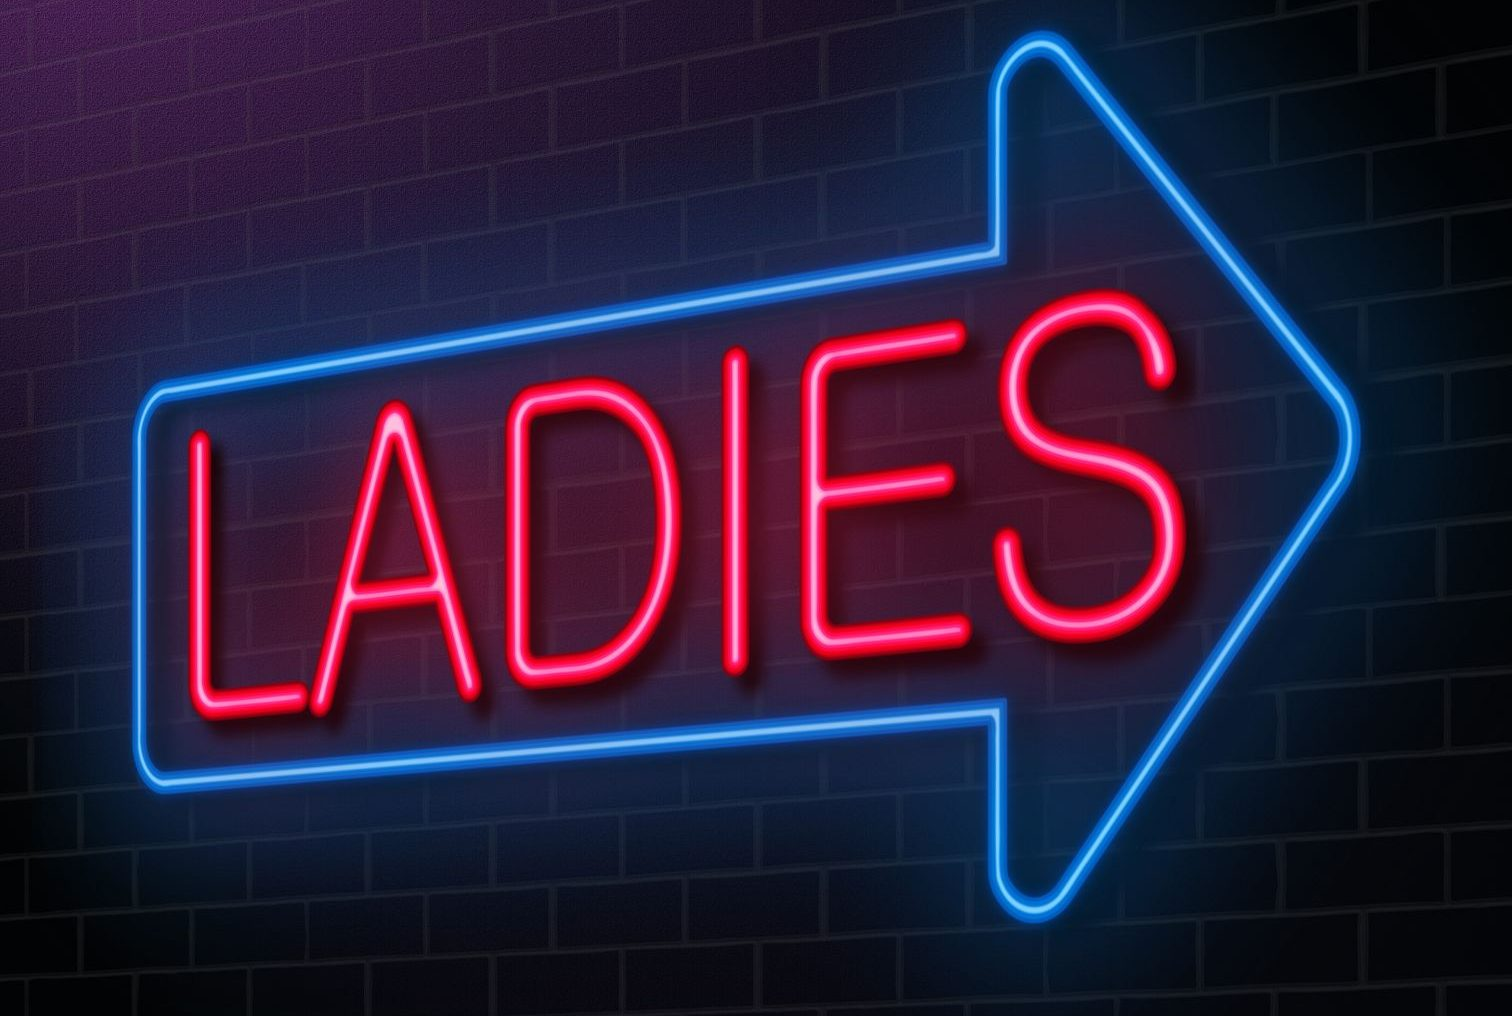 illuminated arrow sign depicting the word ladies